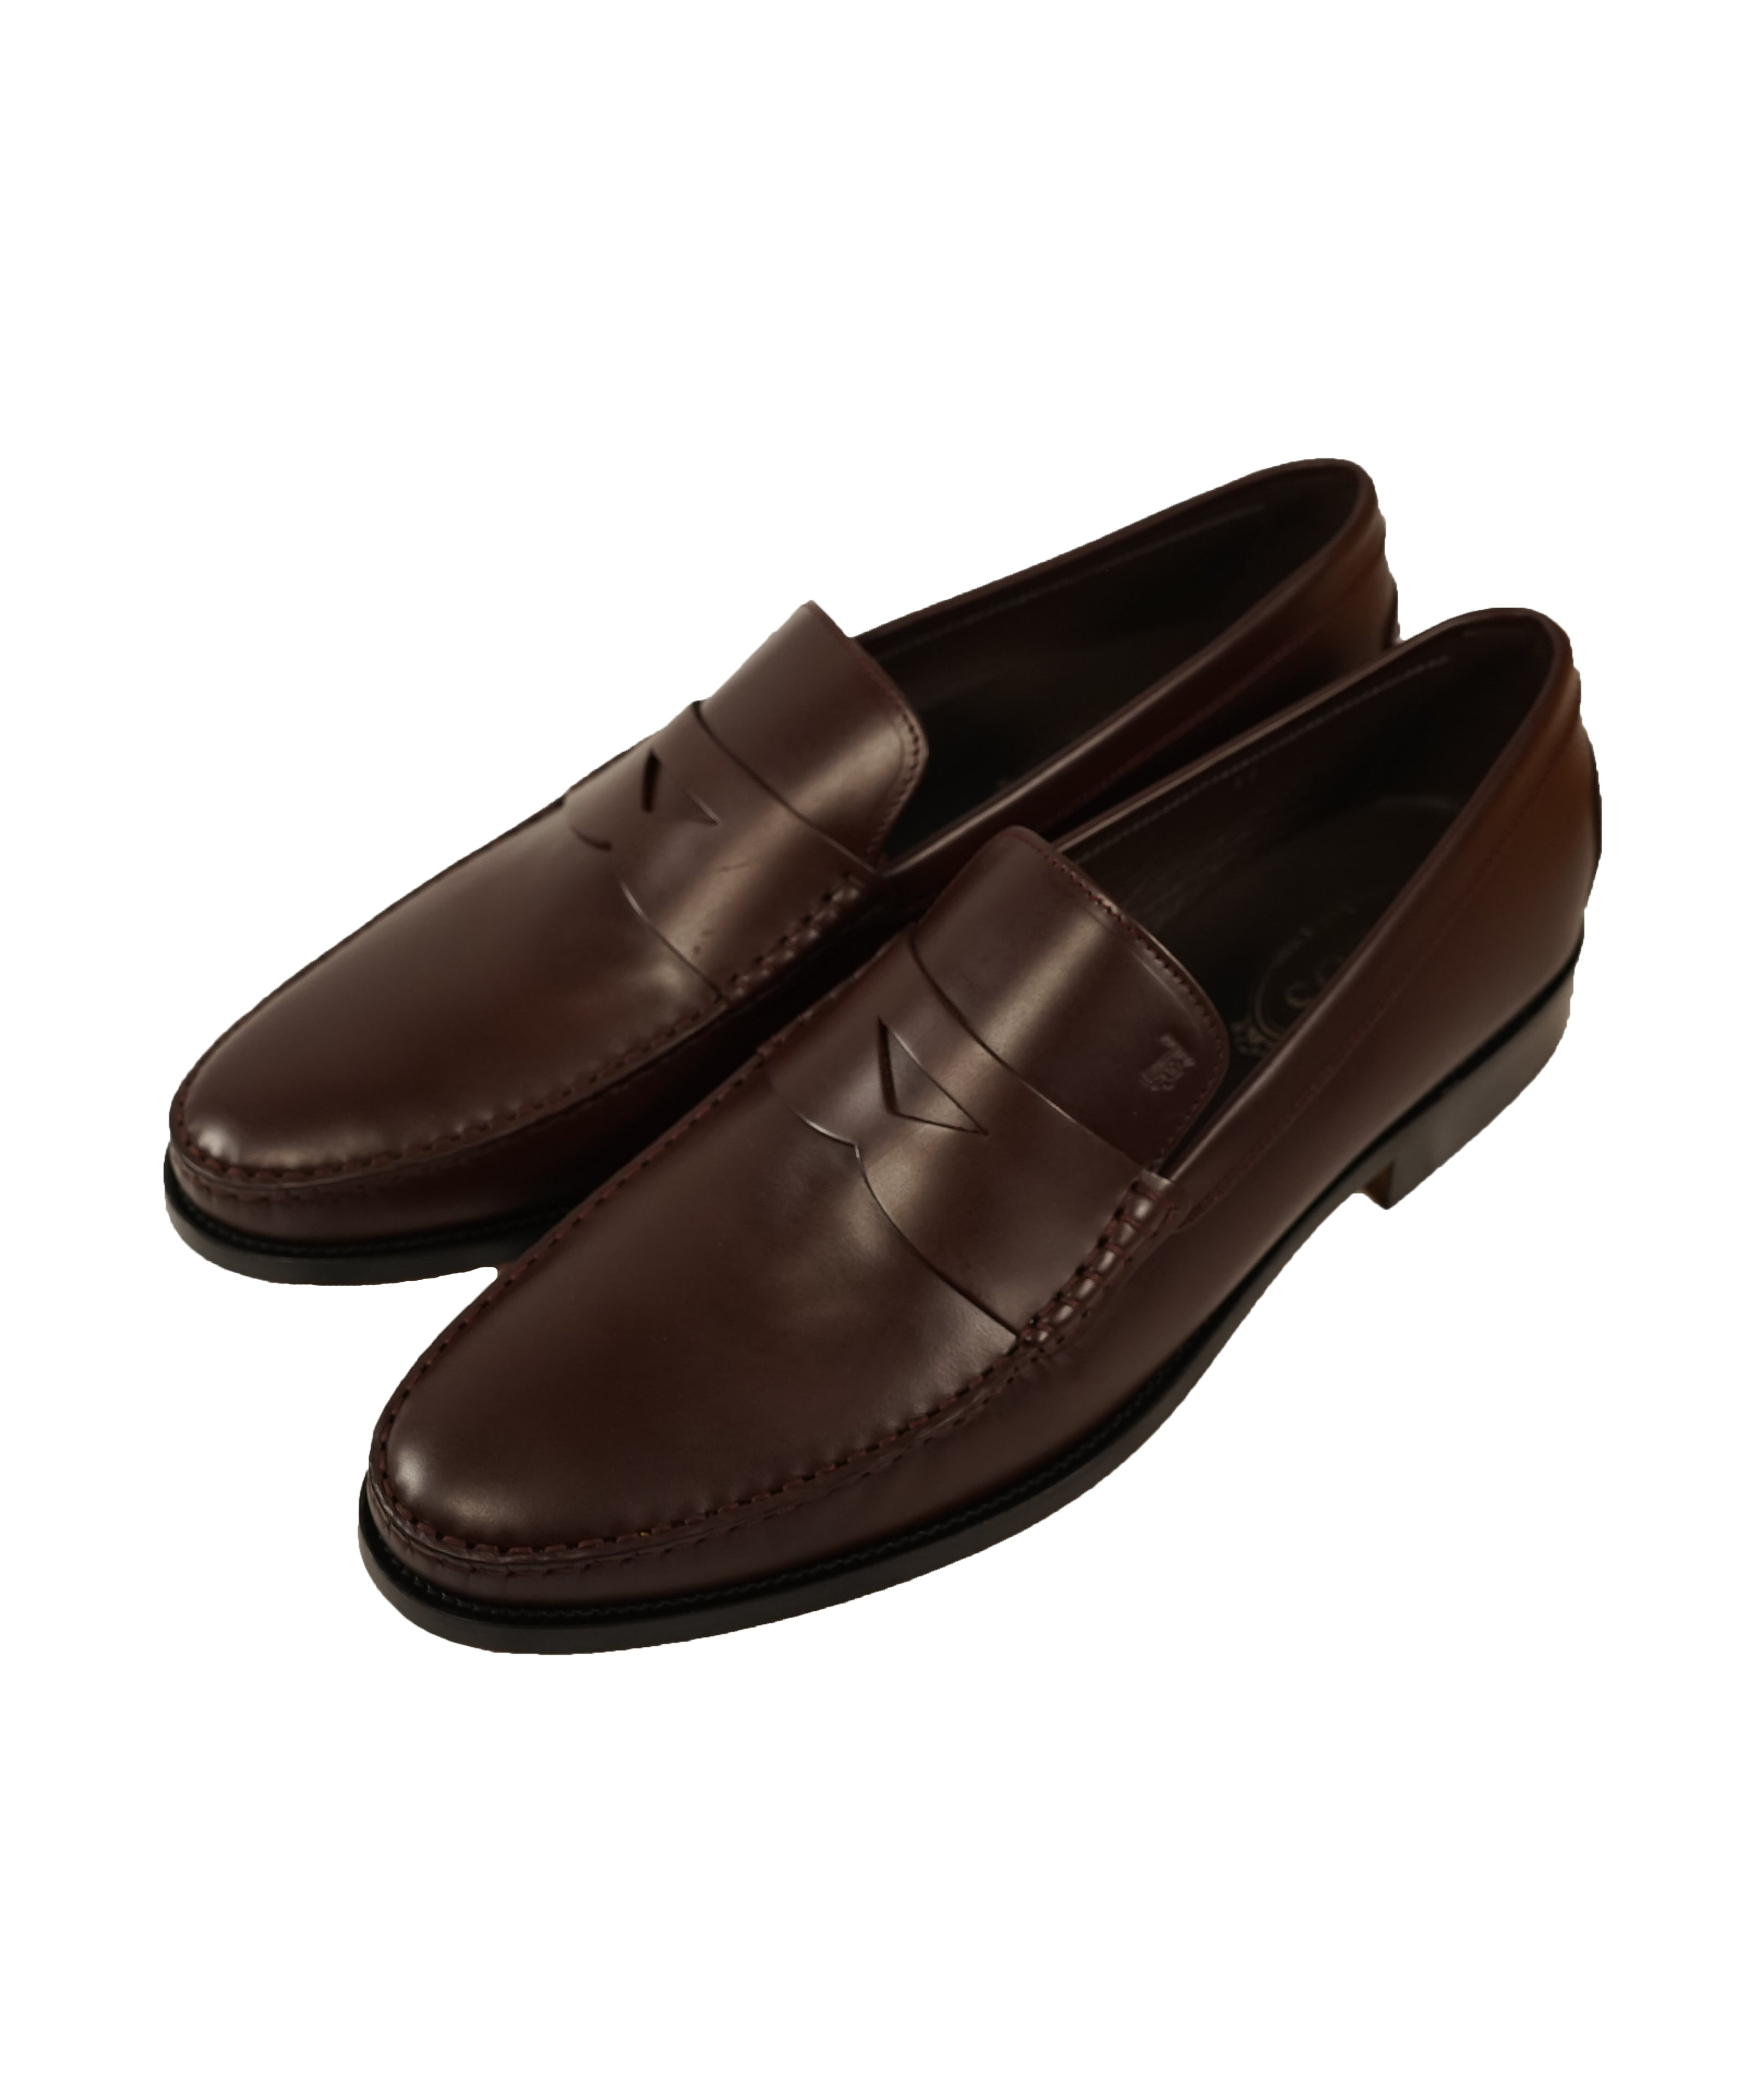 "TOD'S - Burgundy Oxblood Leather Penny Loafers ""Boston Devon"" Leather Sole - 13US"